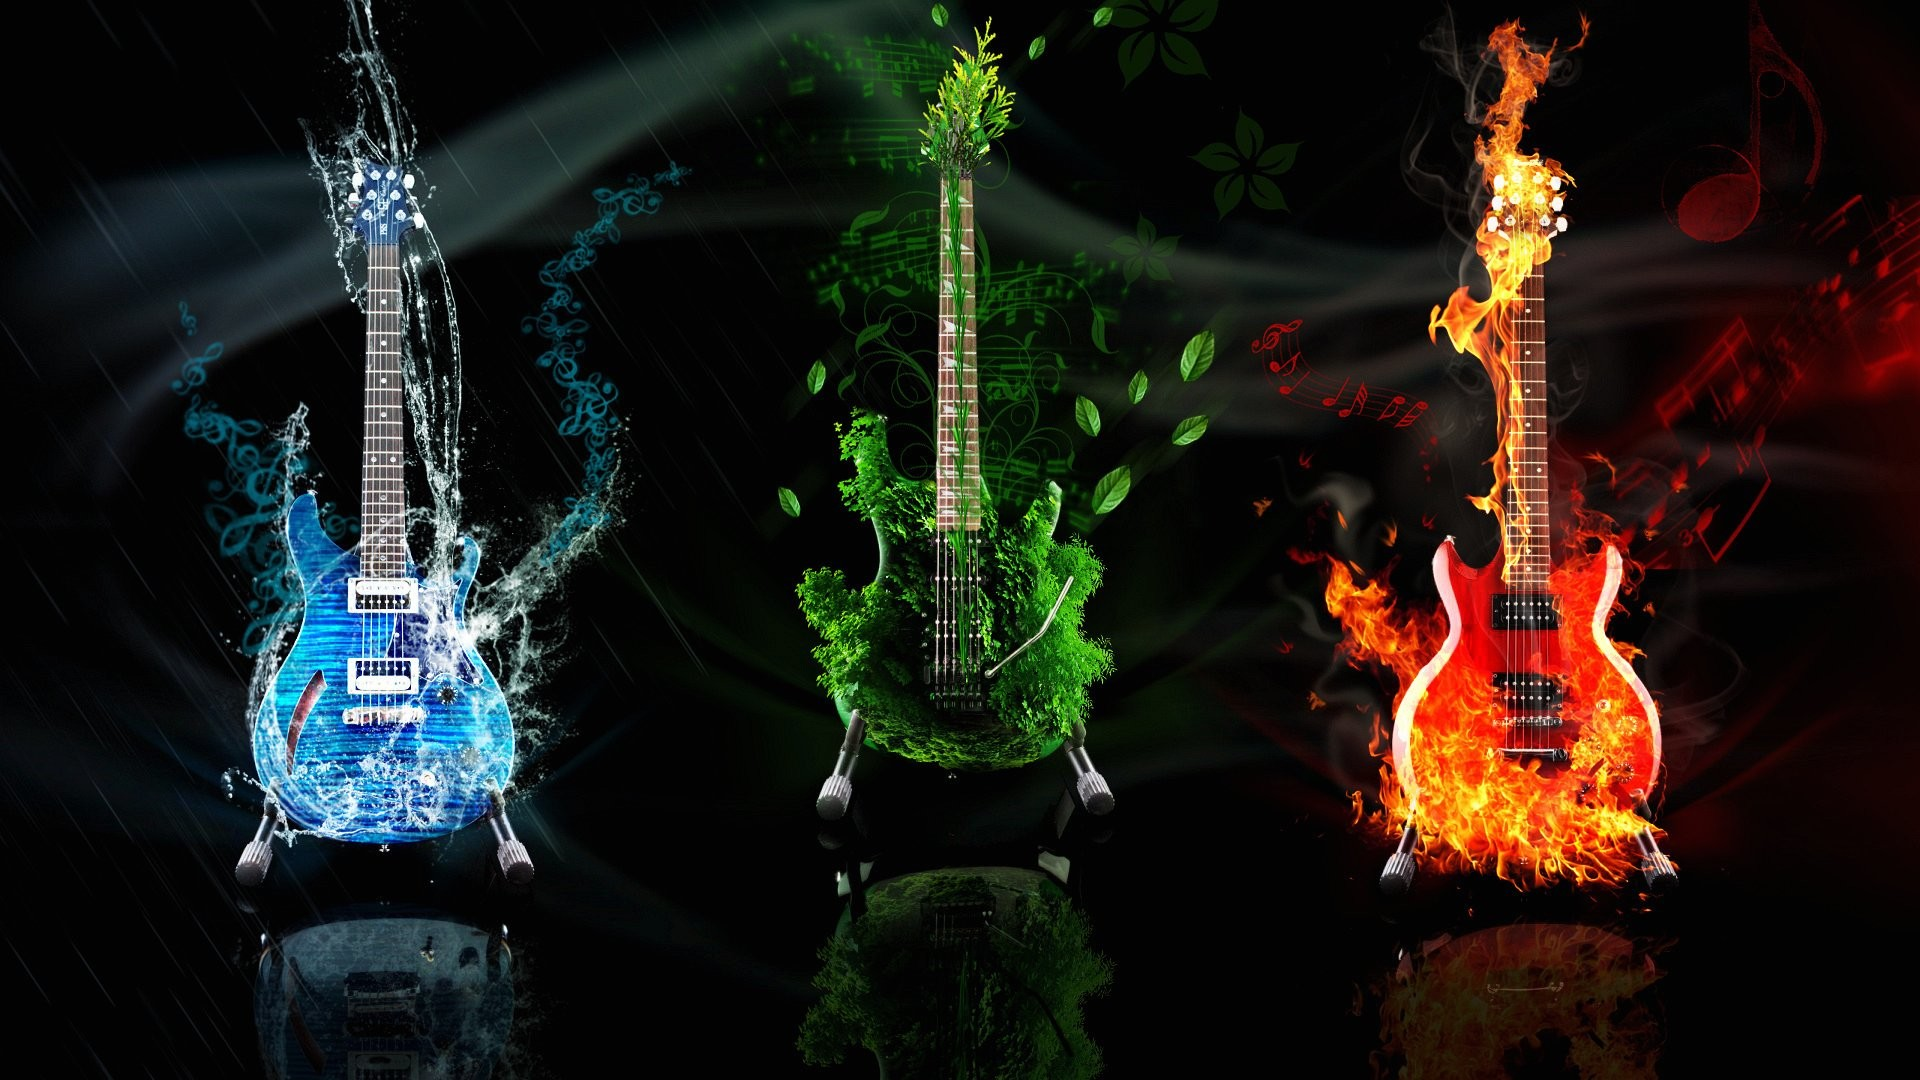 1920x1080 Wallpaper guitars music abstract 1920 x 1080 full hd